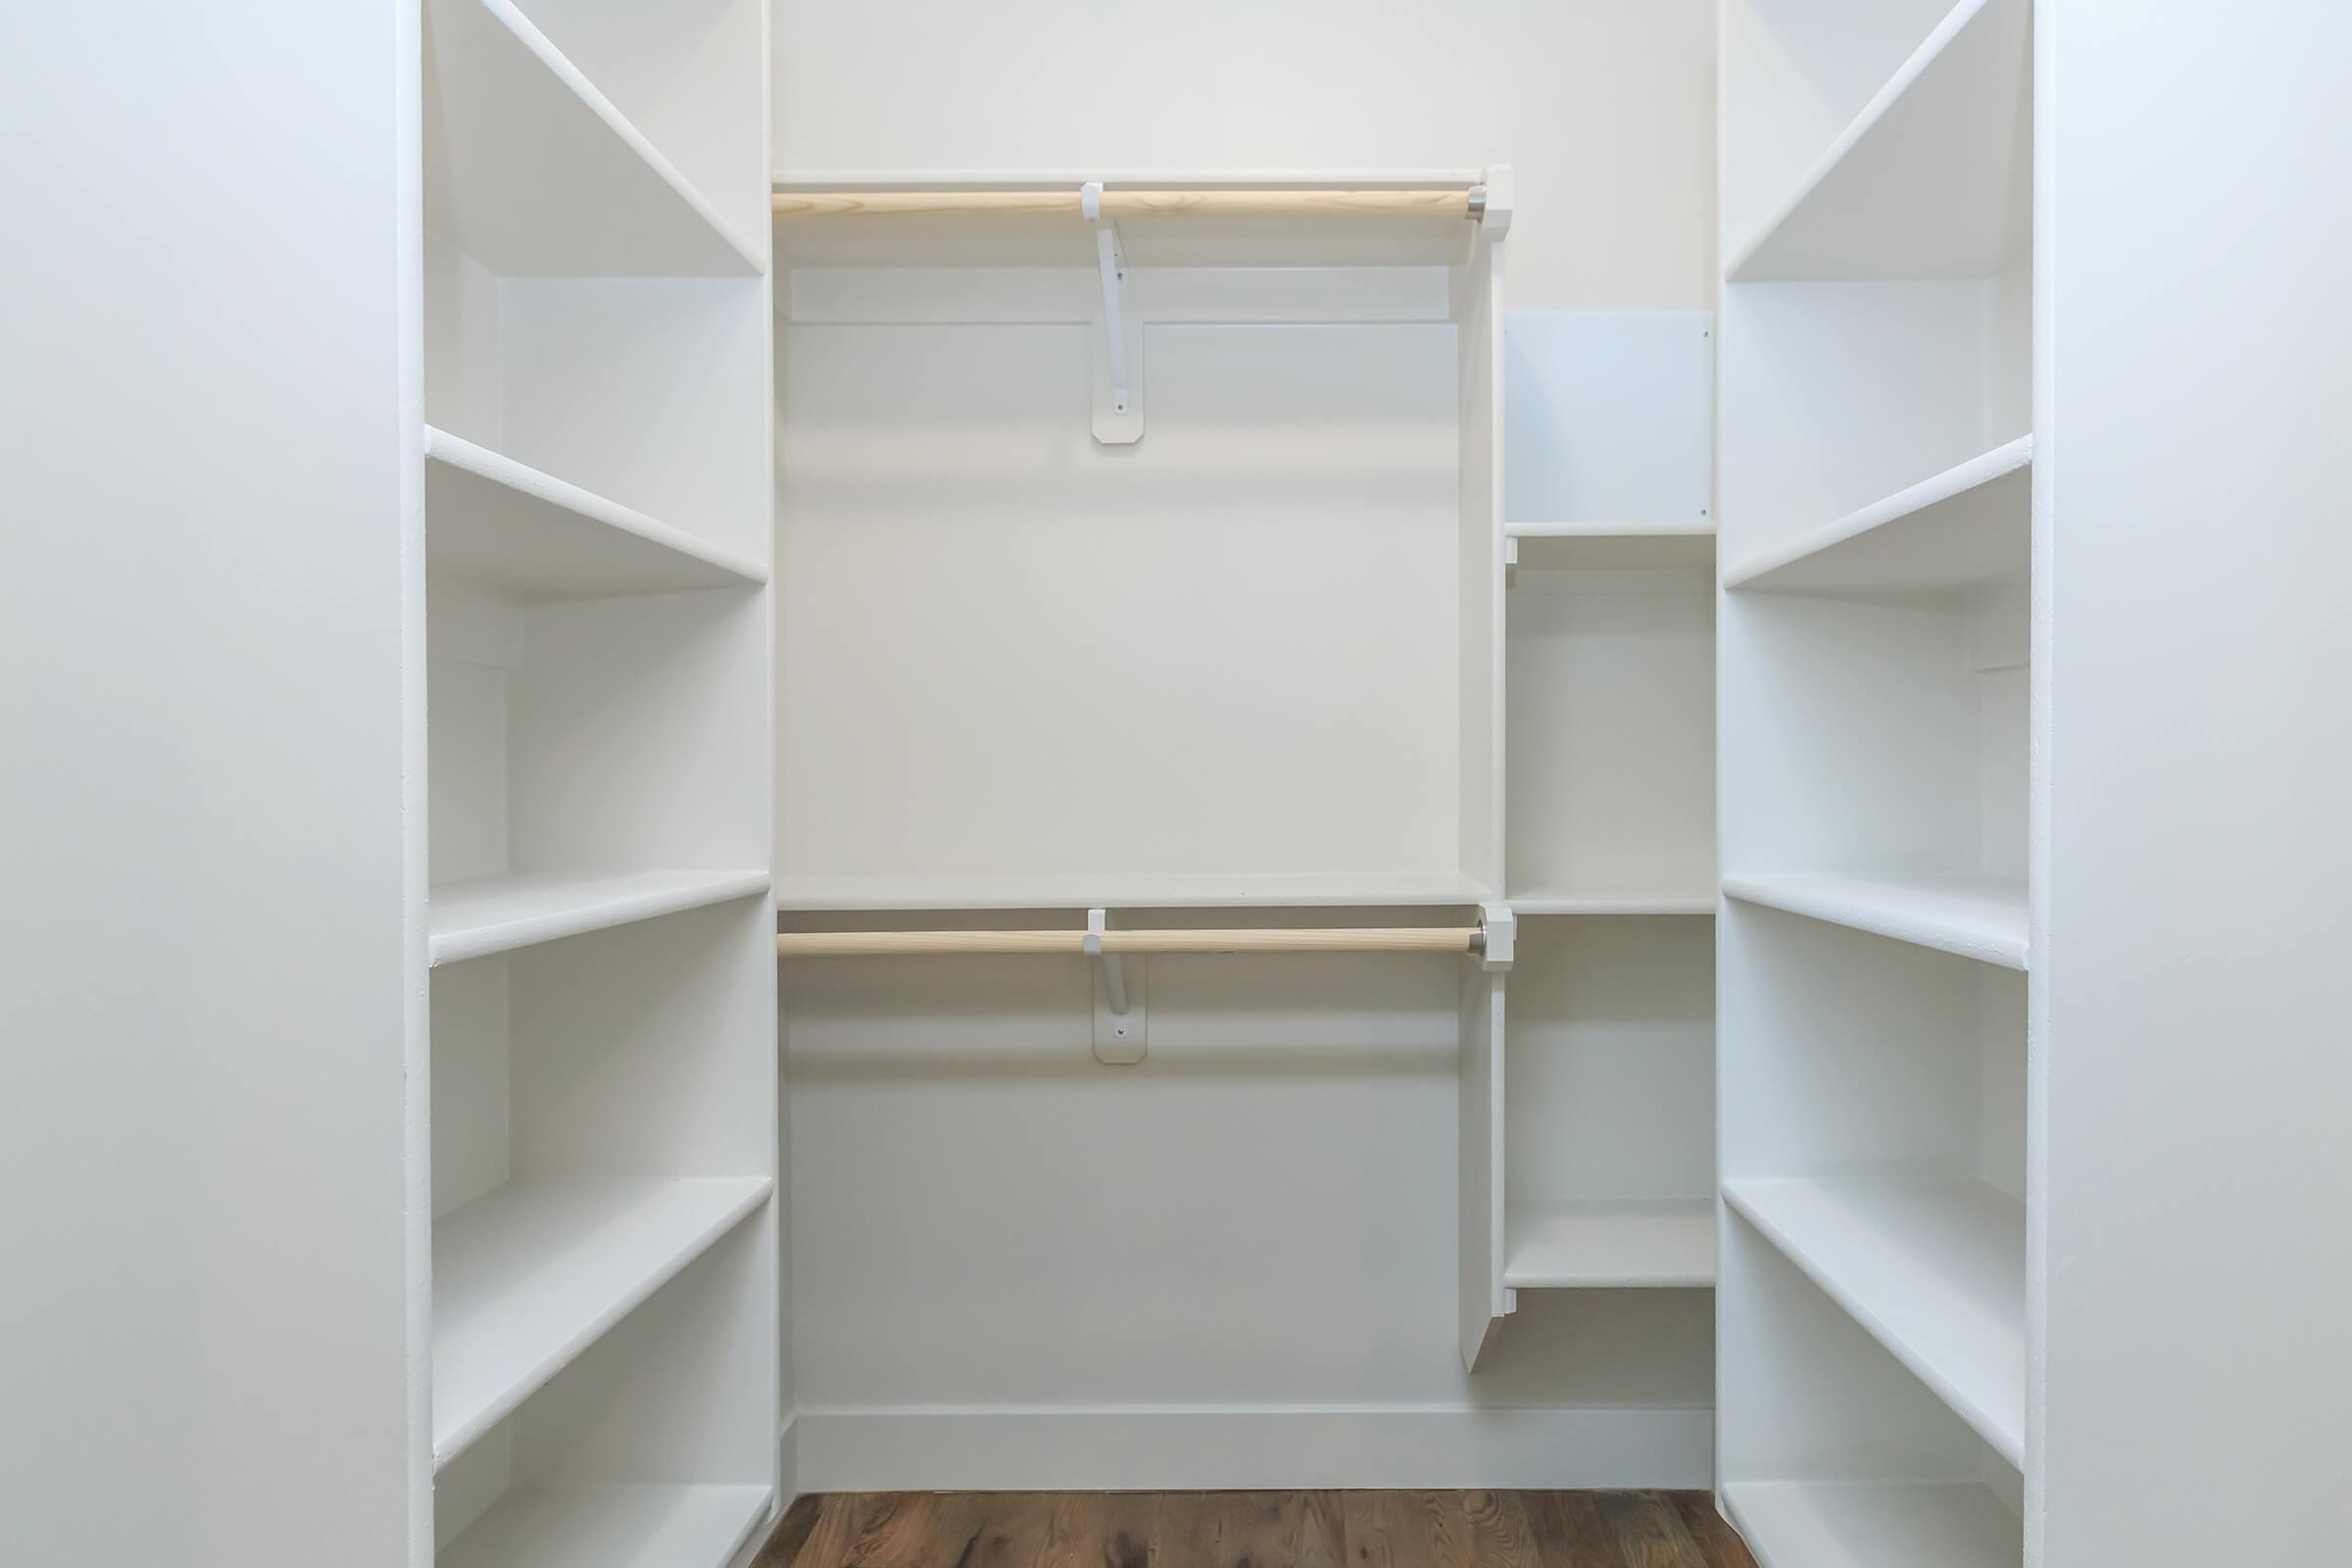 an empty shelf in front